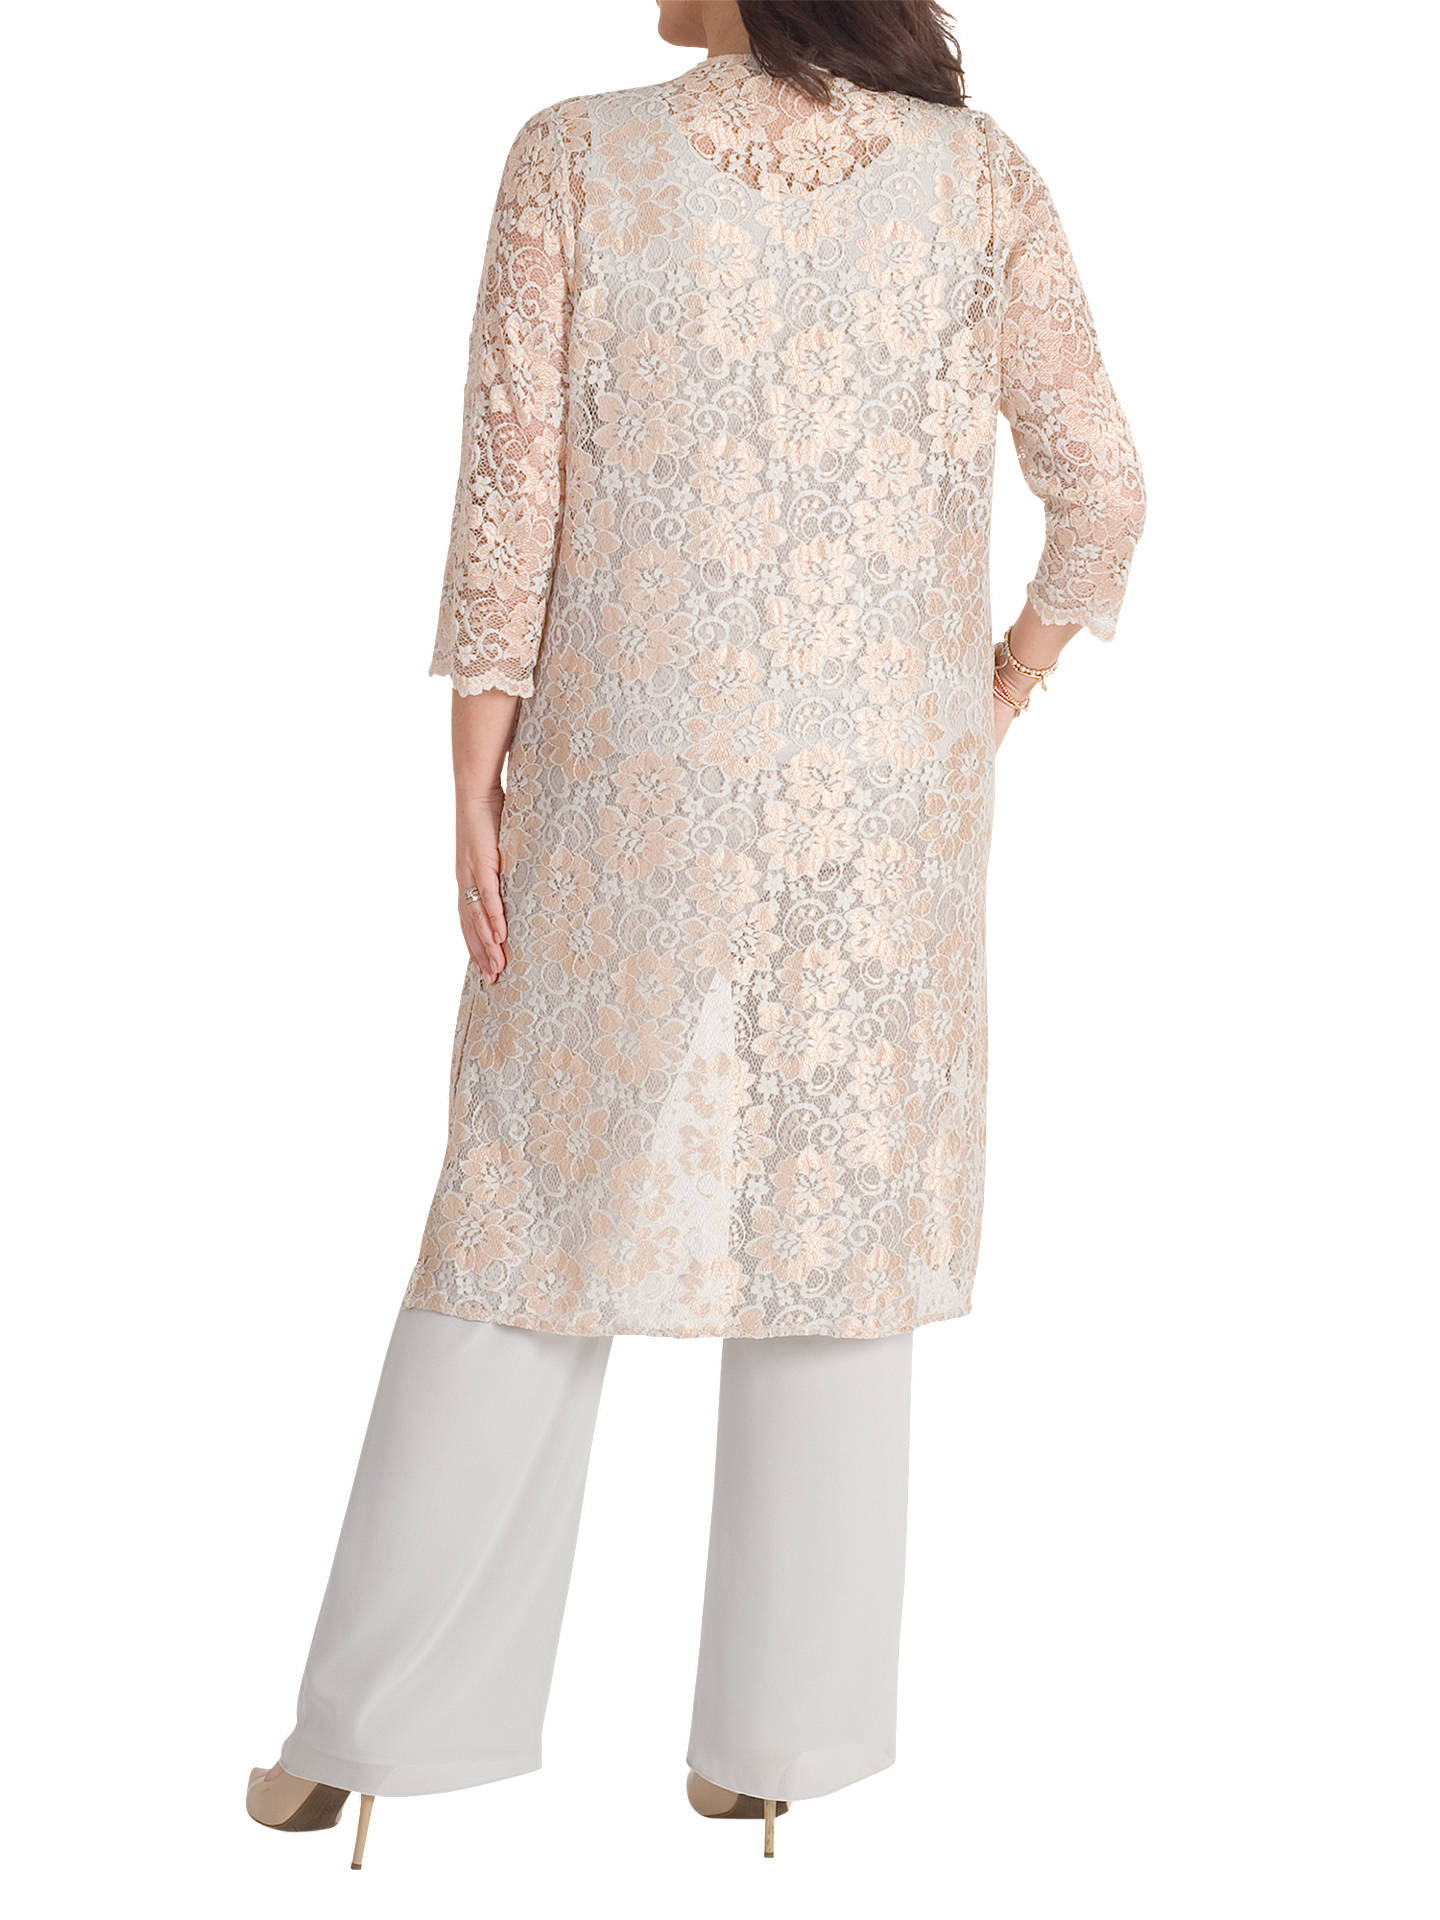 BuyChesca Scallop Lace Coat, Gold, 12 Online at johnlewis.com